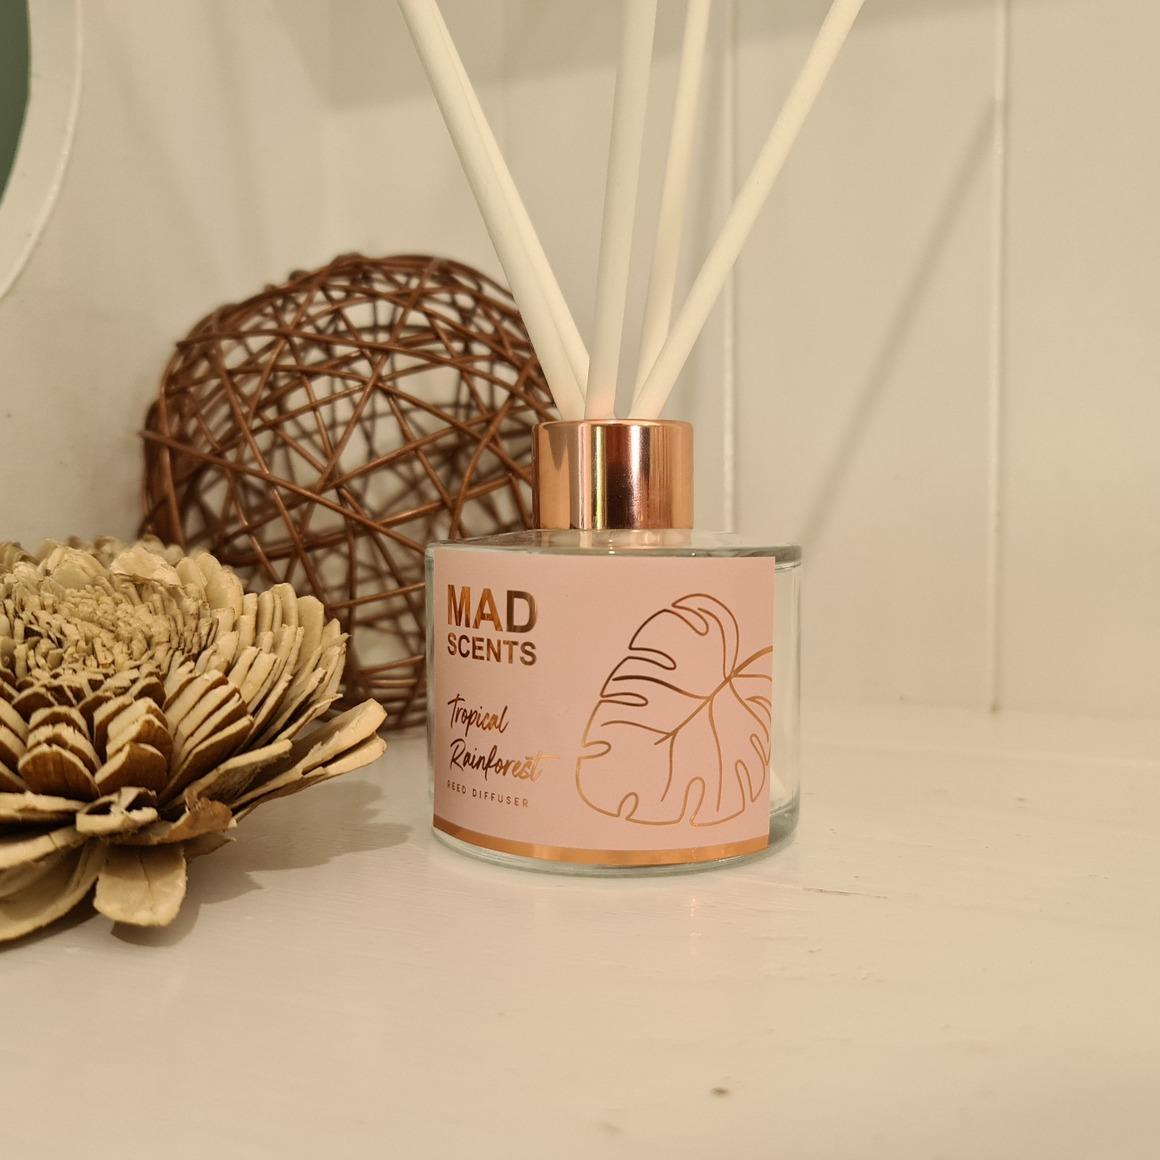 Tropical Rainforest reed diffuser | Trada Marketplace